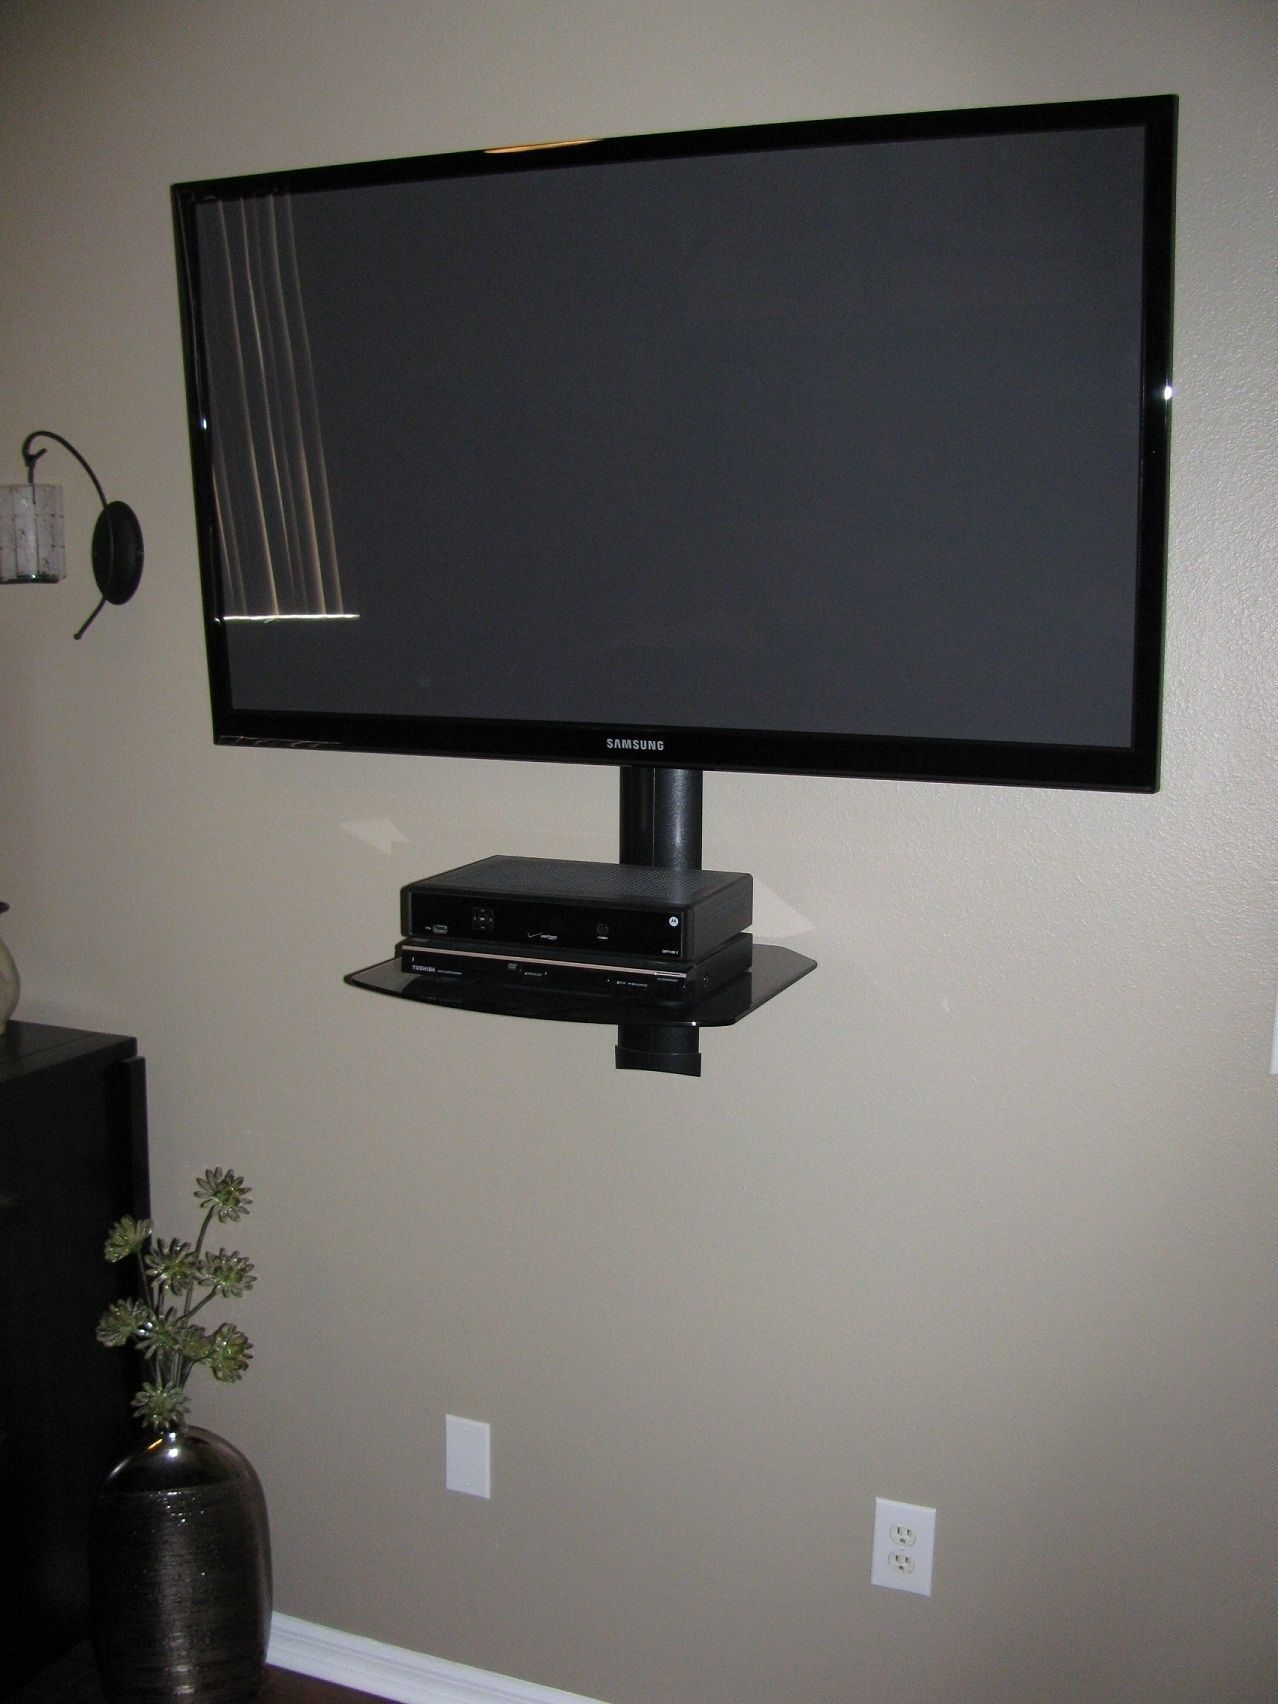 Tv Wall Mount With Shelf For Cable Box Tvwallmountwithshelf